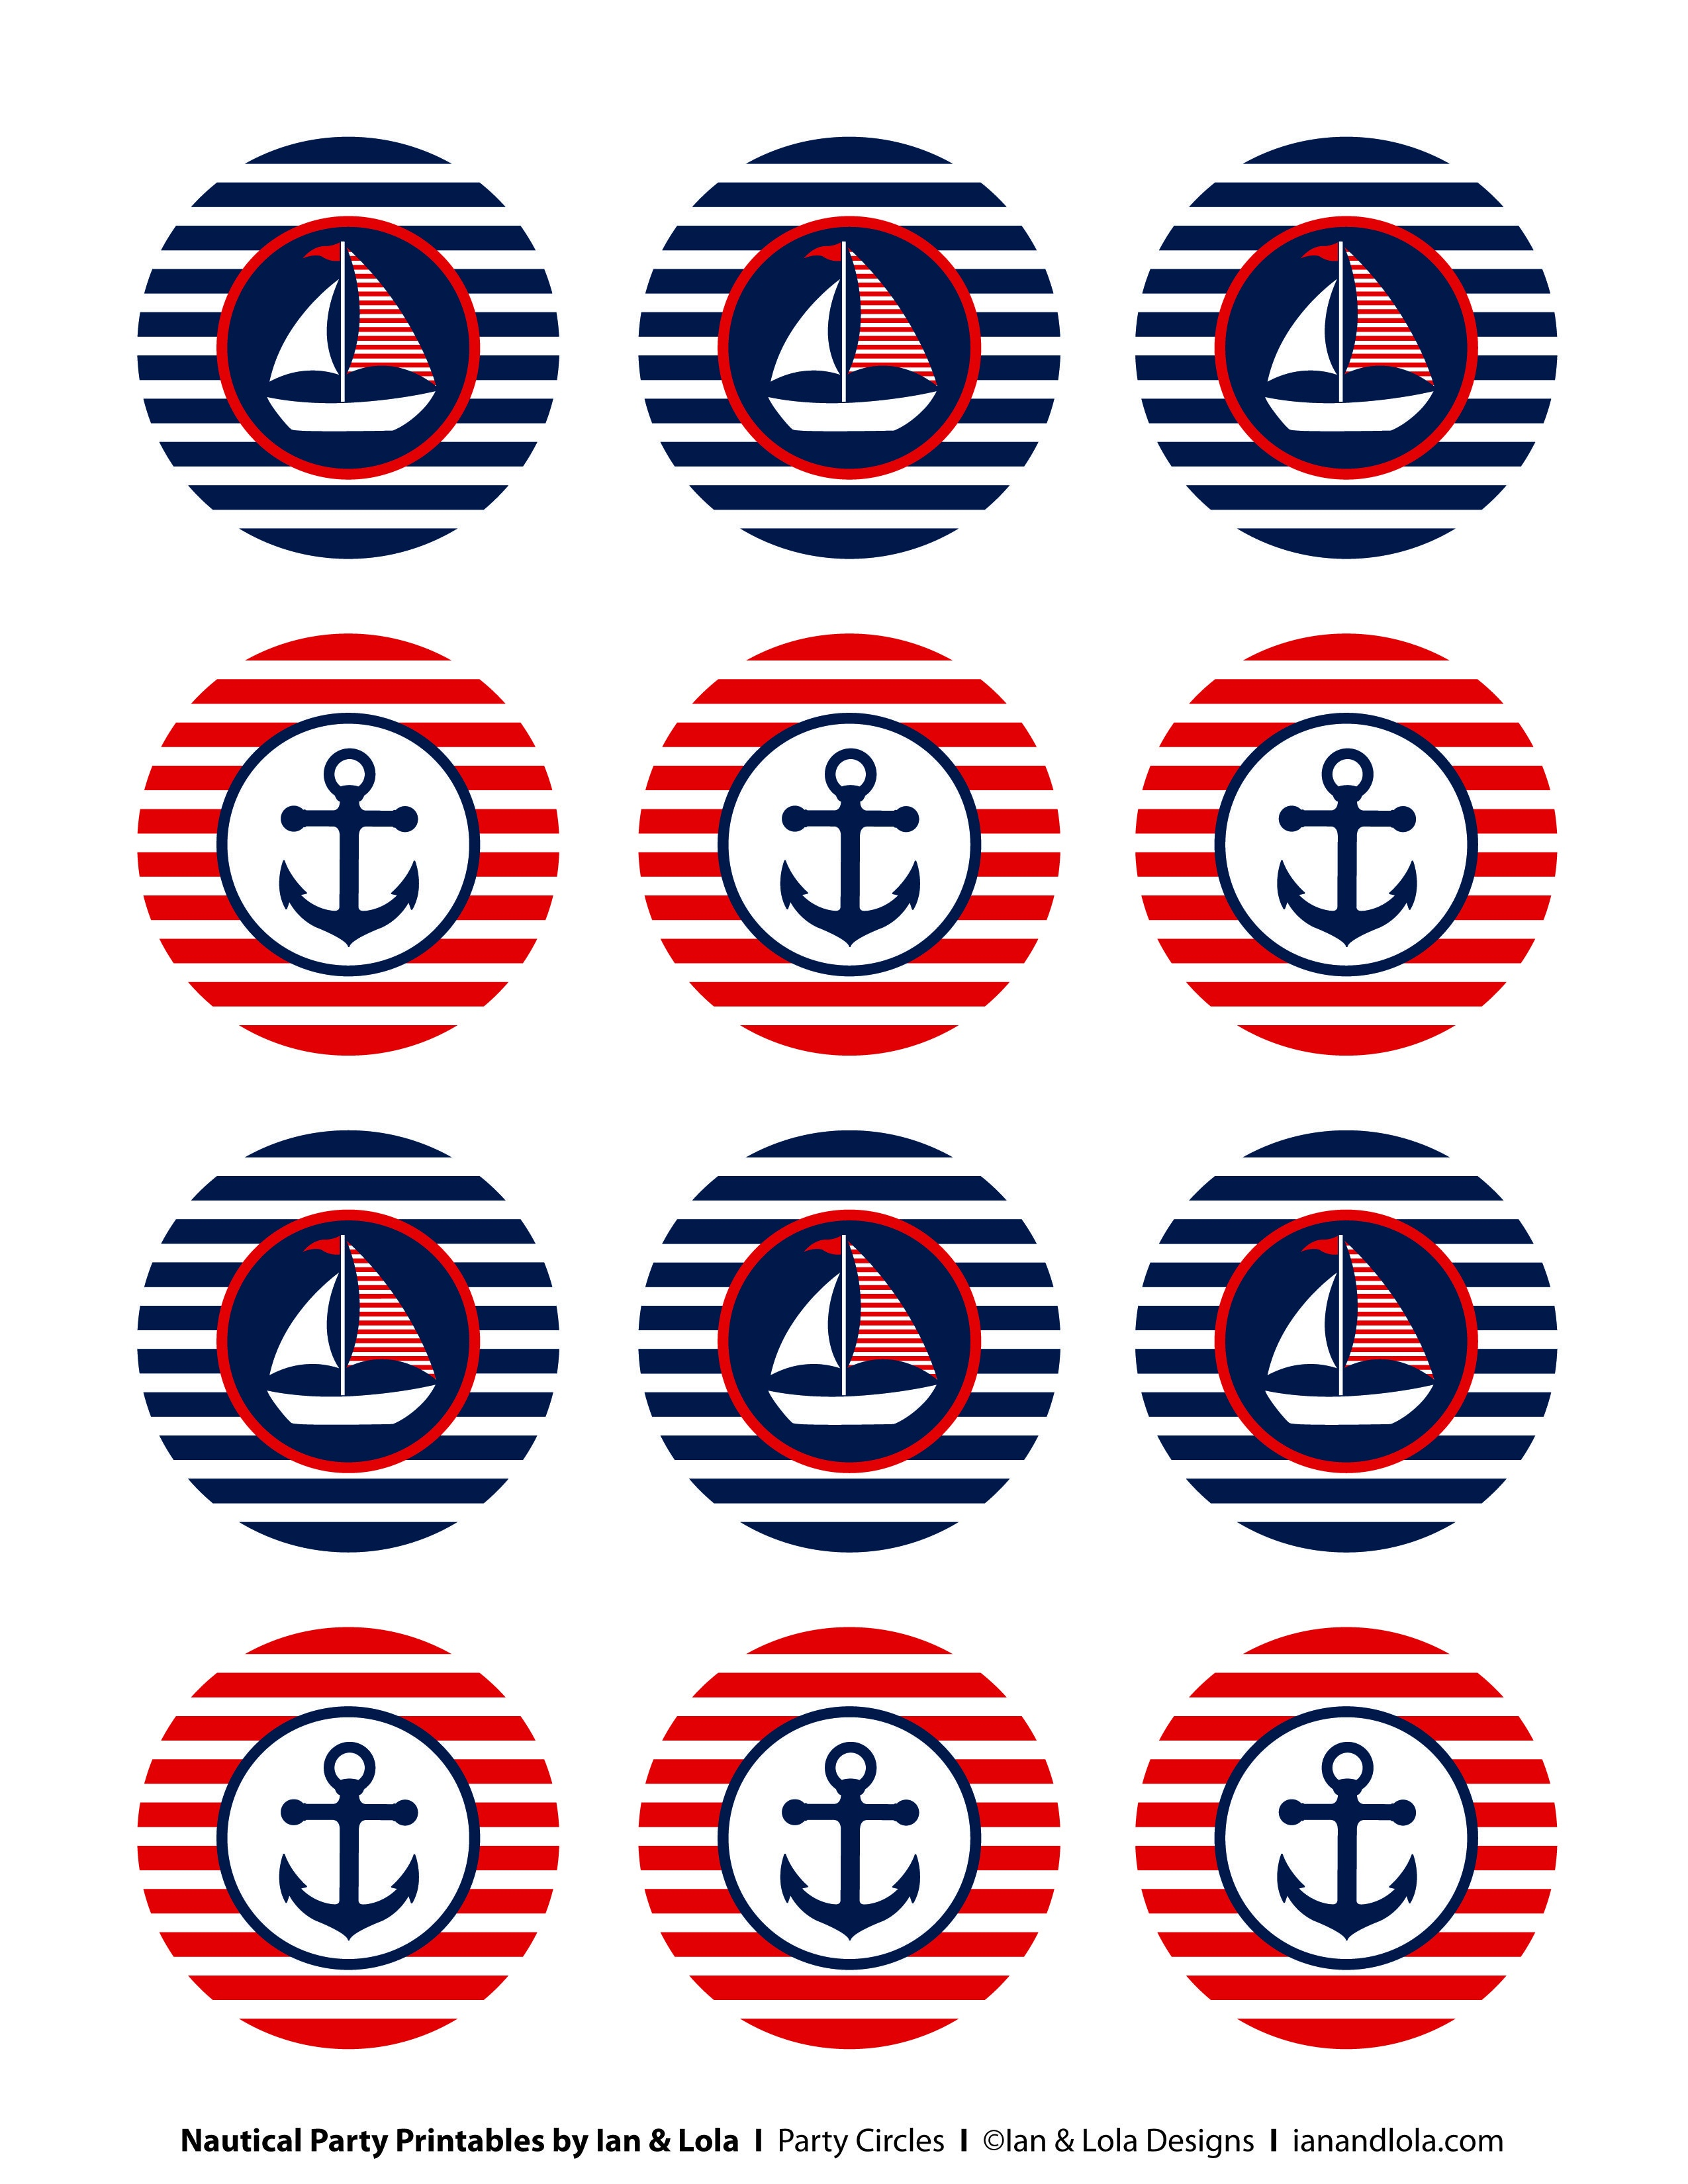 Free Nautical Party Printables From Ian & Lola Designs | Birthday - Free Nautical Printables